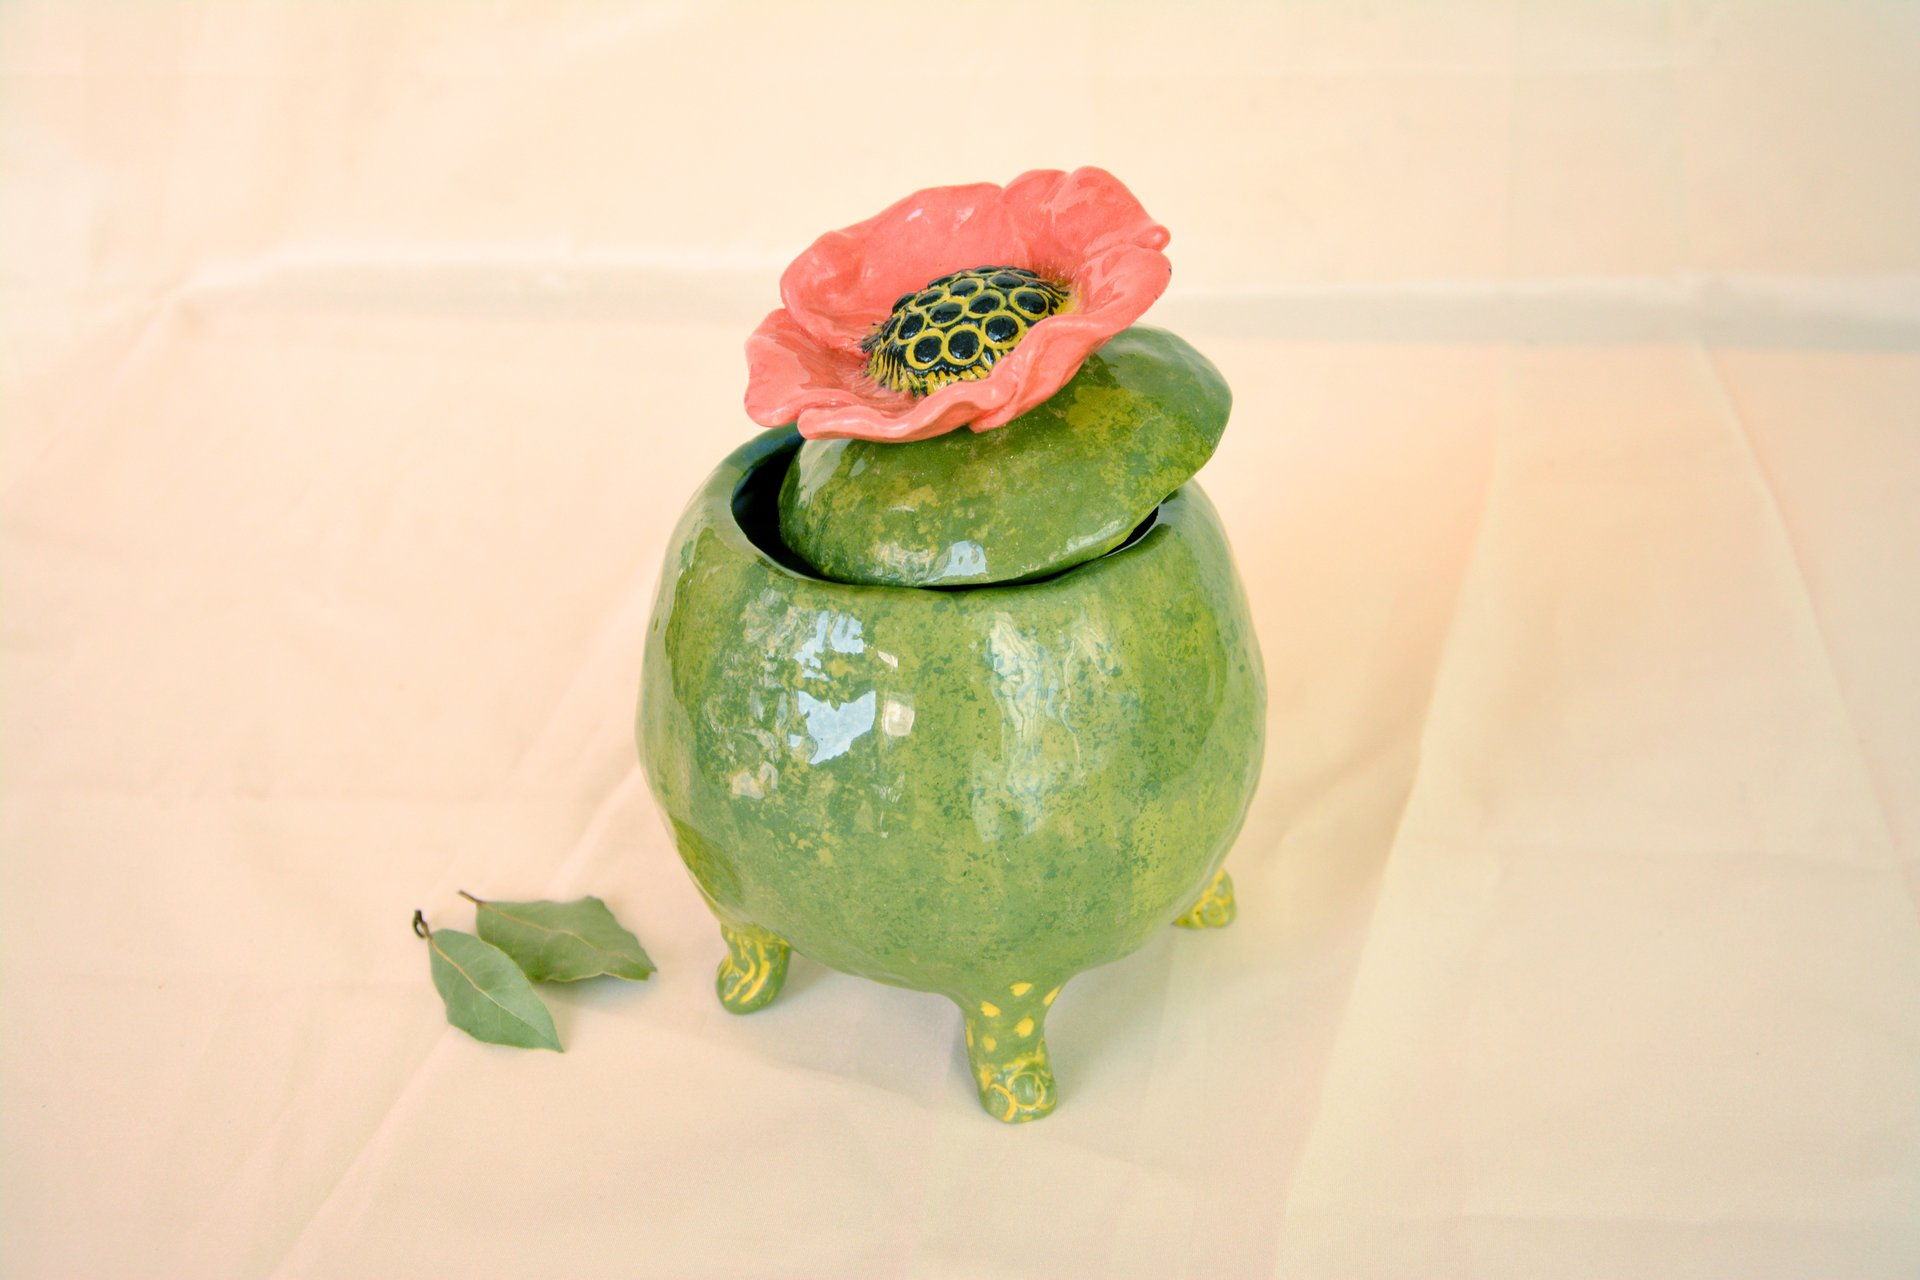 Green jar with Poppy - Ceramic jars, 12 cm * 12 cm, height - 15 cm, photo 2 of 3.